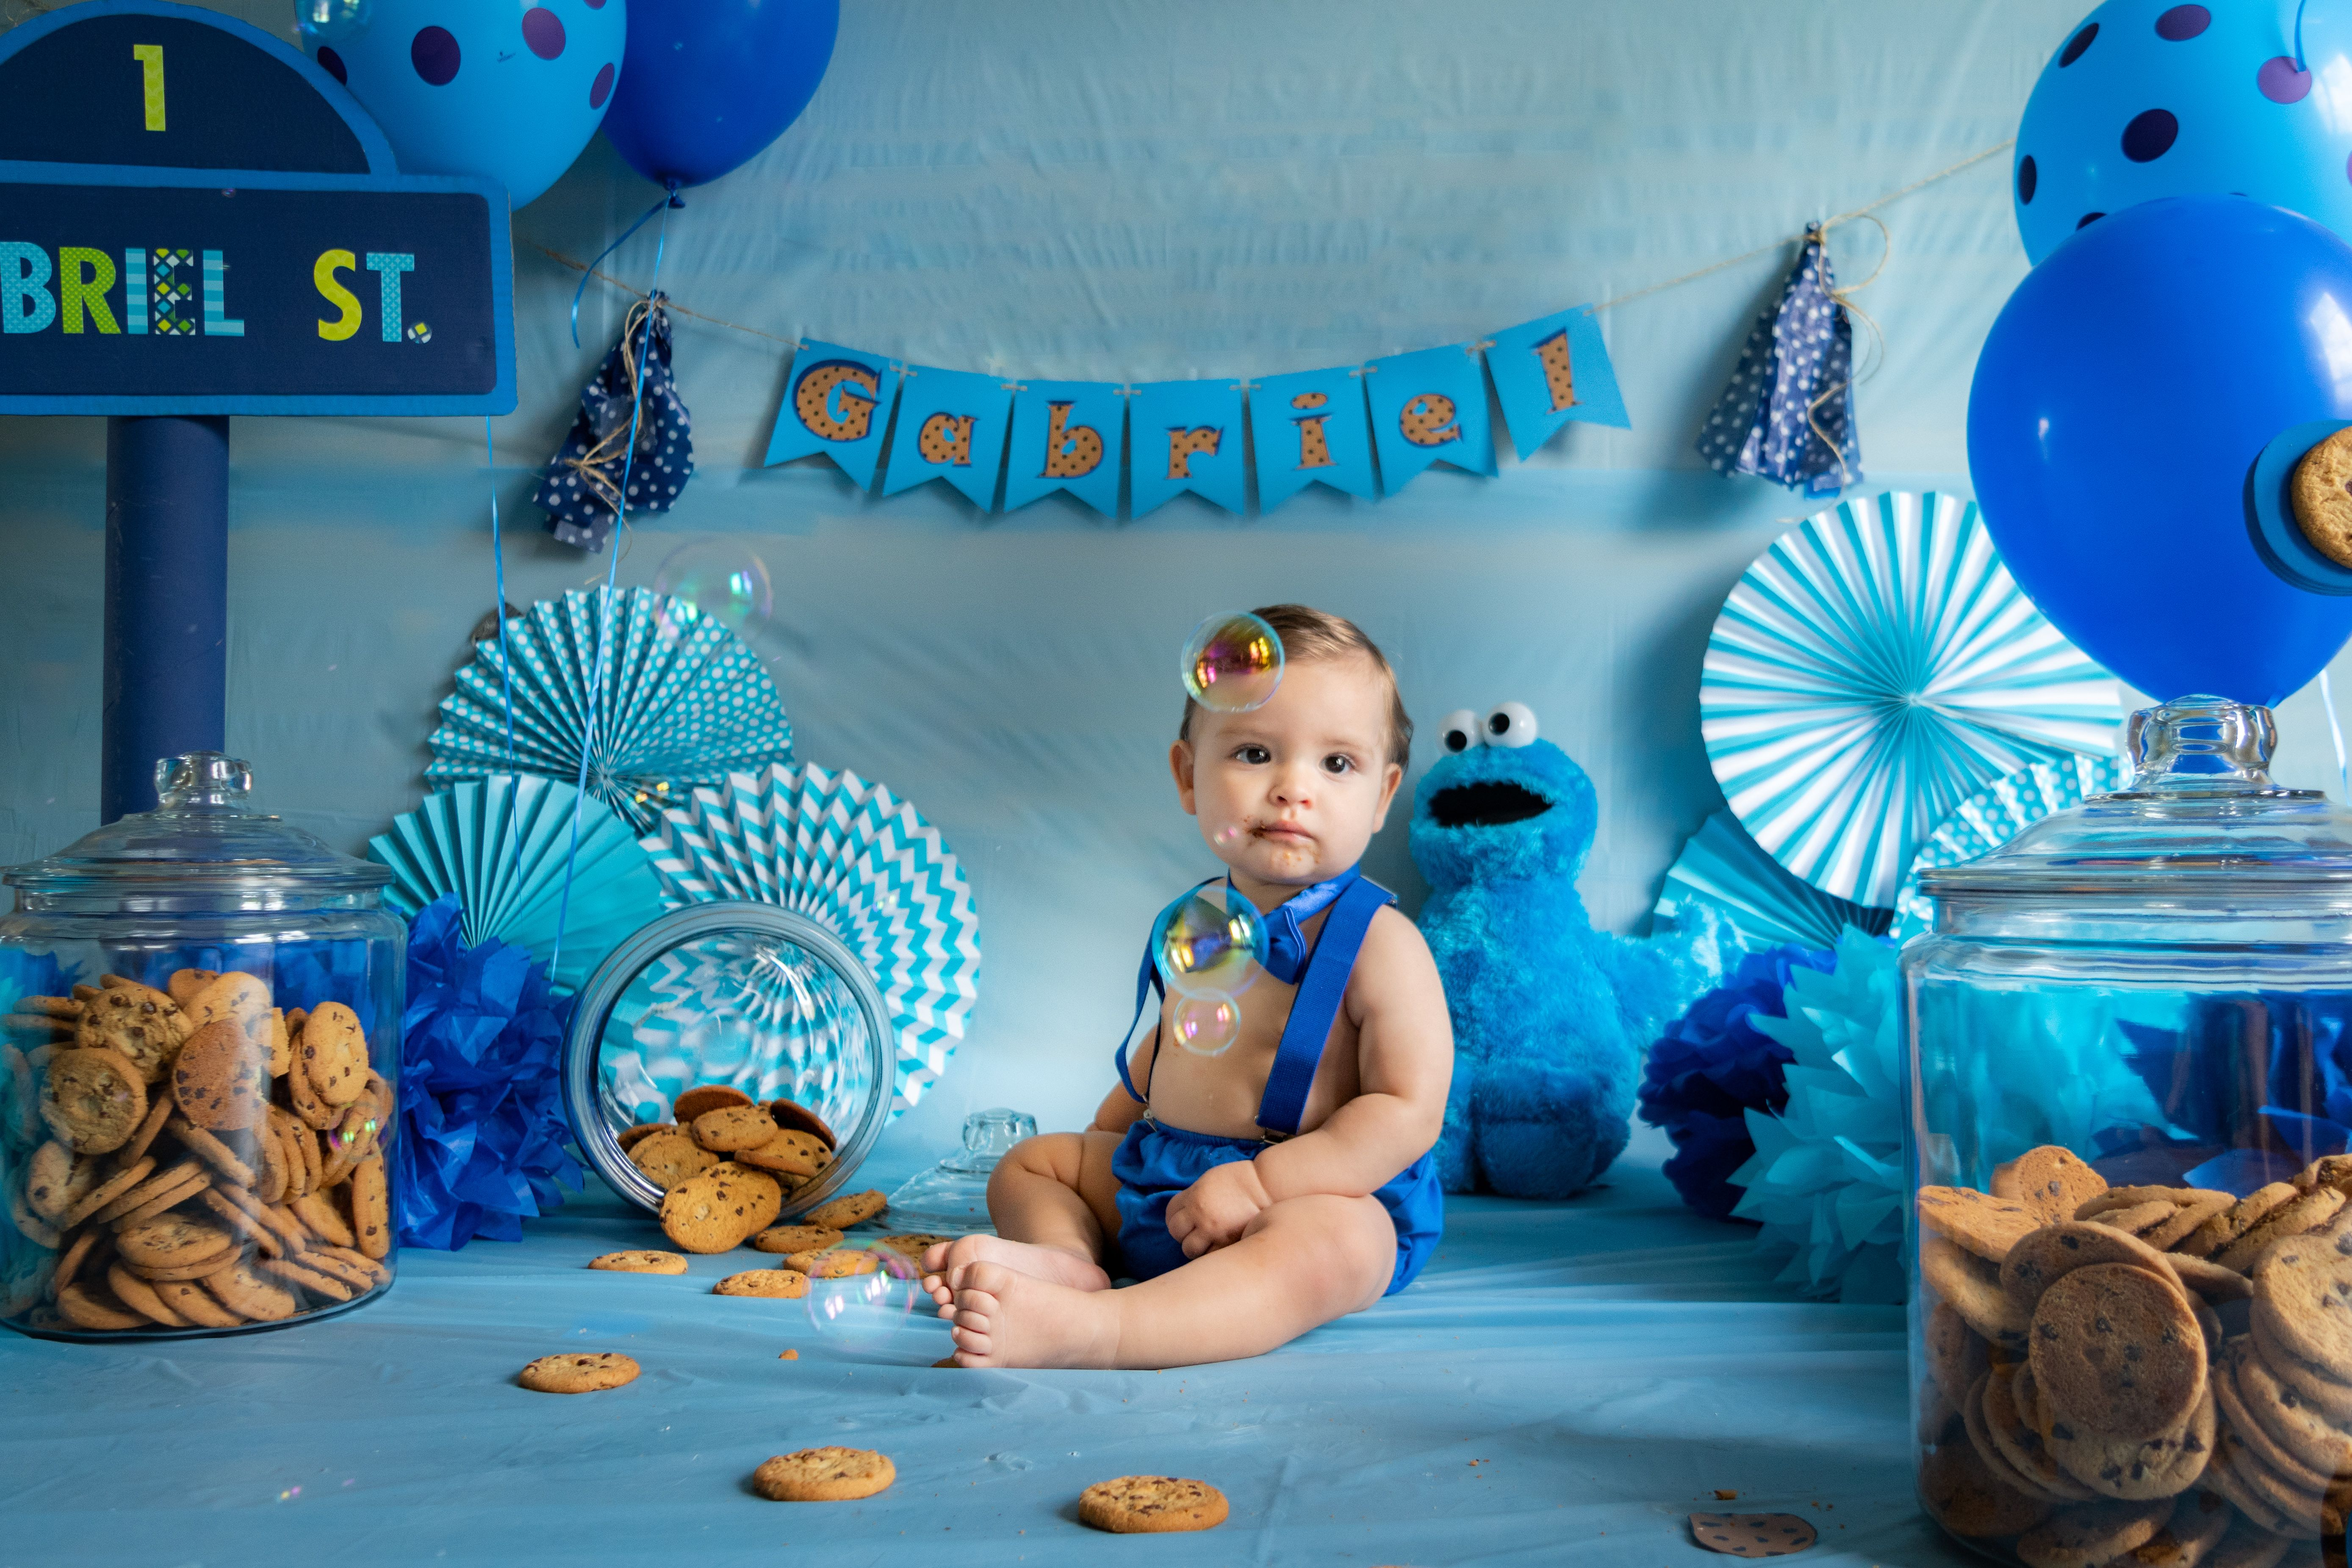 Pin On Cookie Monster 1 Year Old Photo Shoot